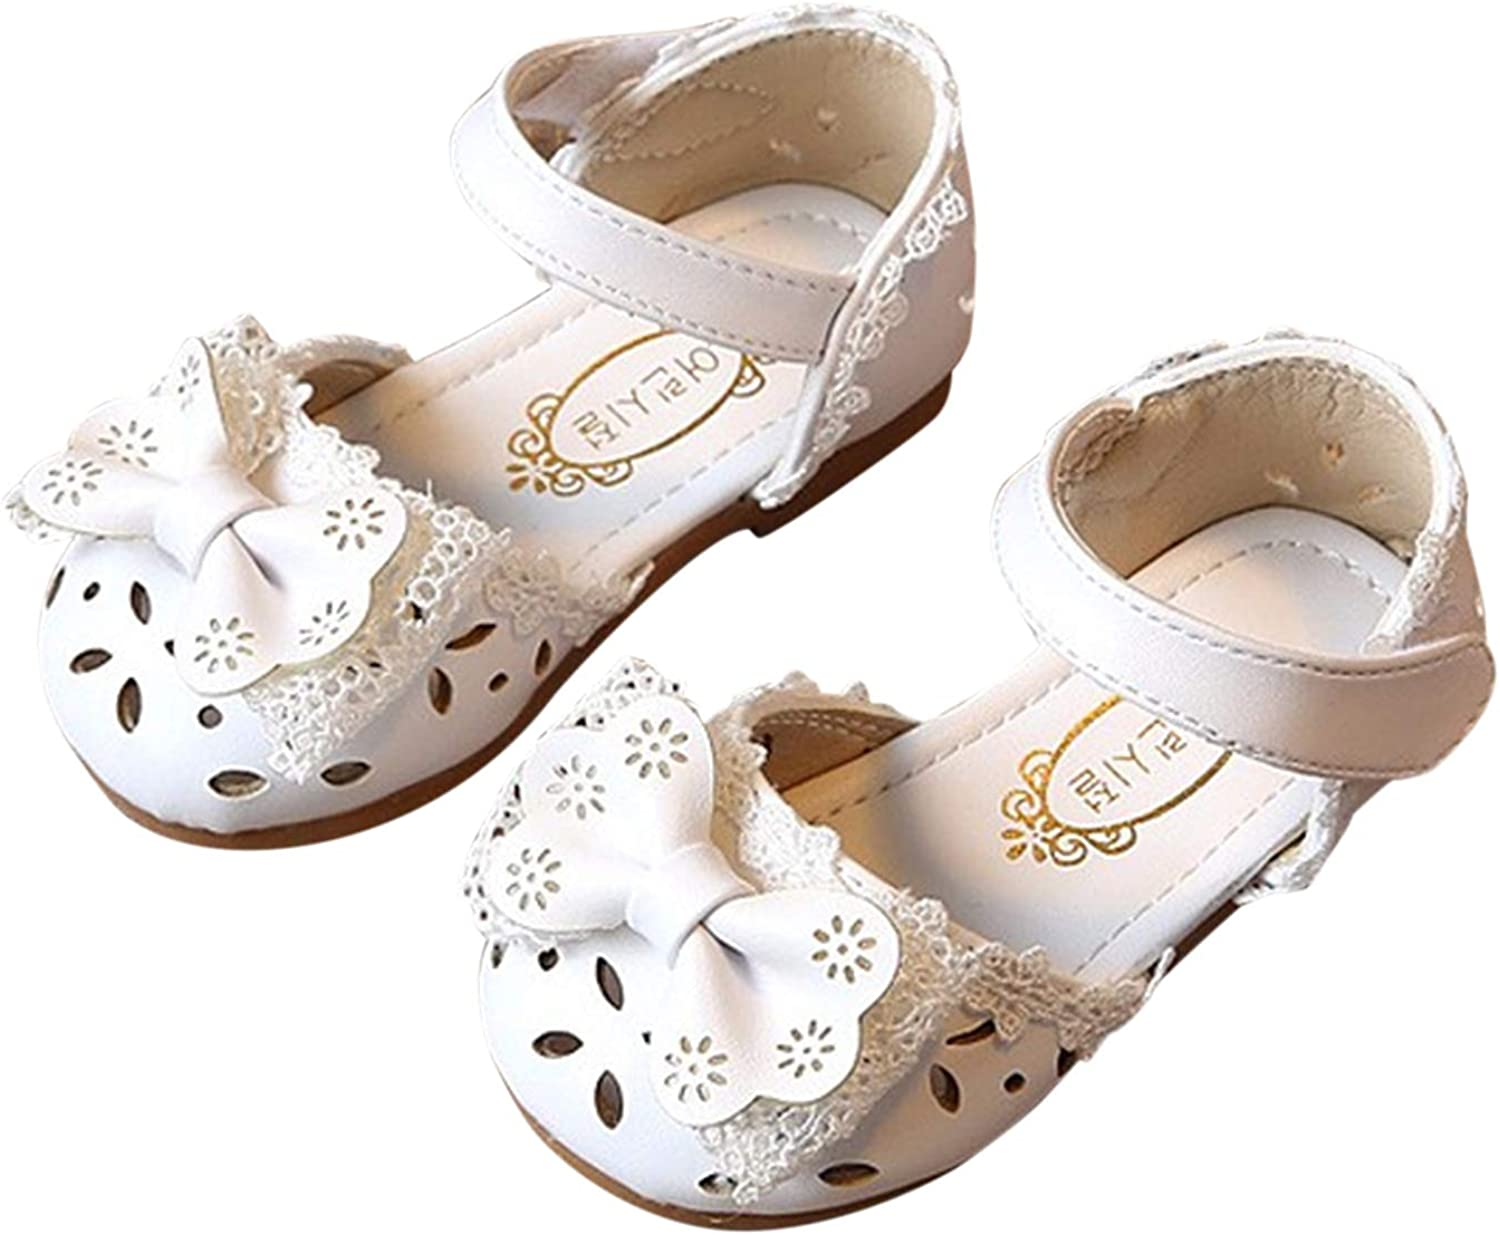 Durio Toddler Girl Sandals Non-slip Sole Over item Max 84% OFF handling Baby PU Rubber